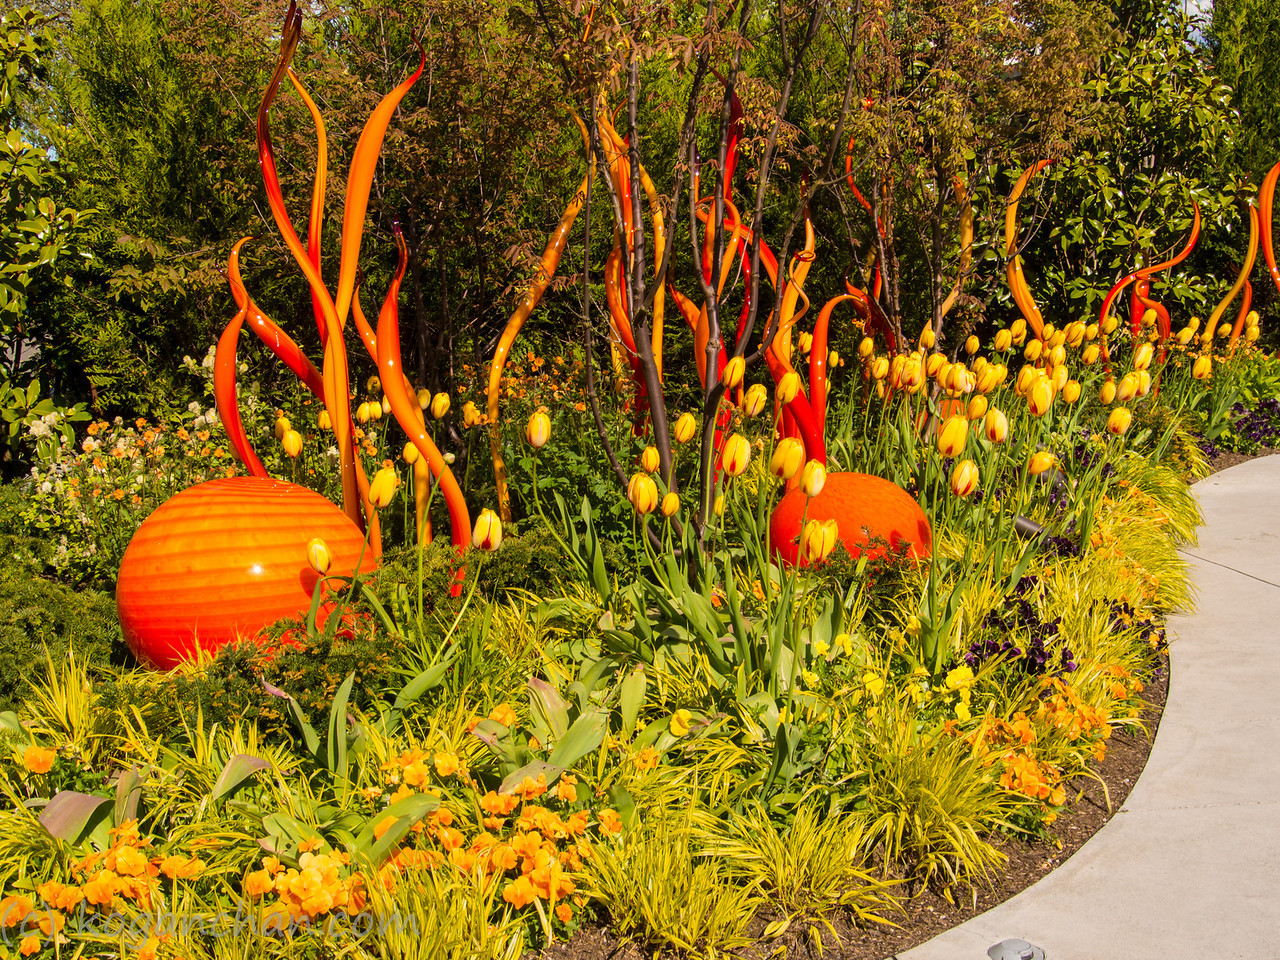 Chihuly - Glass Garden